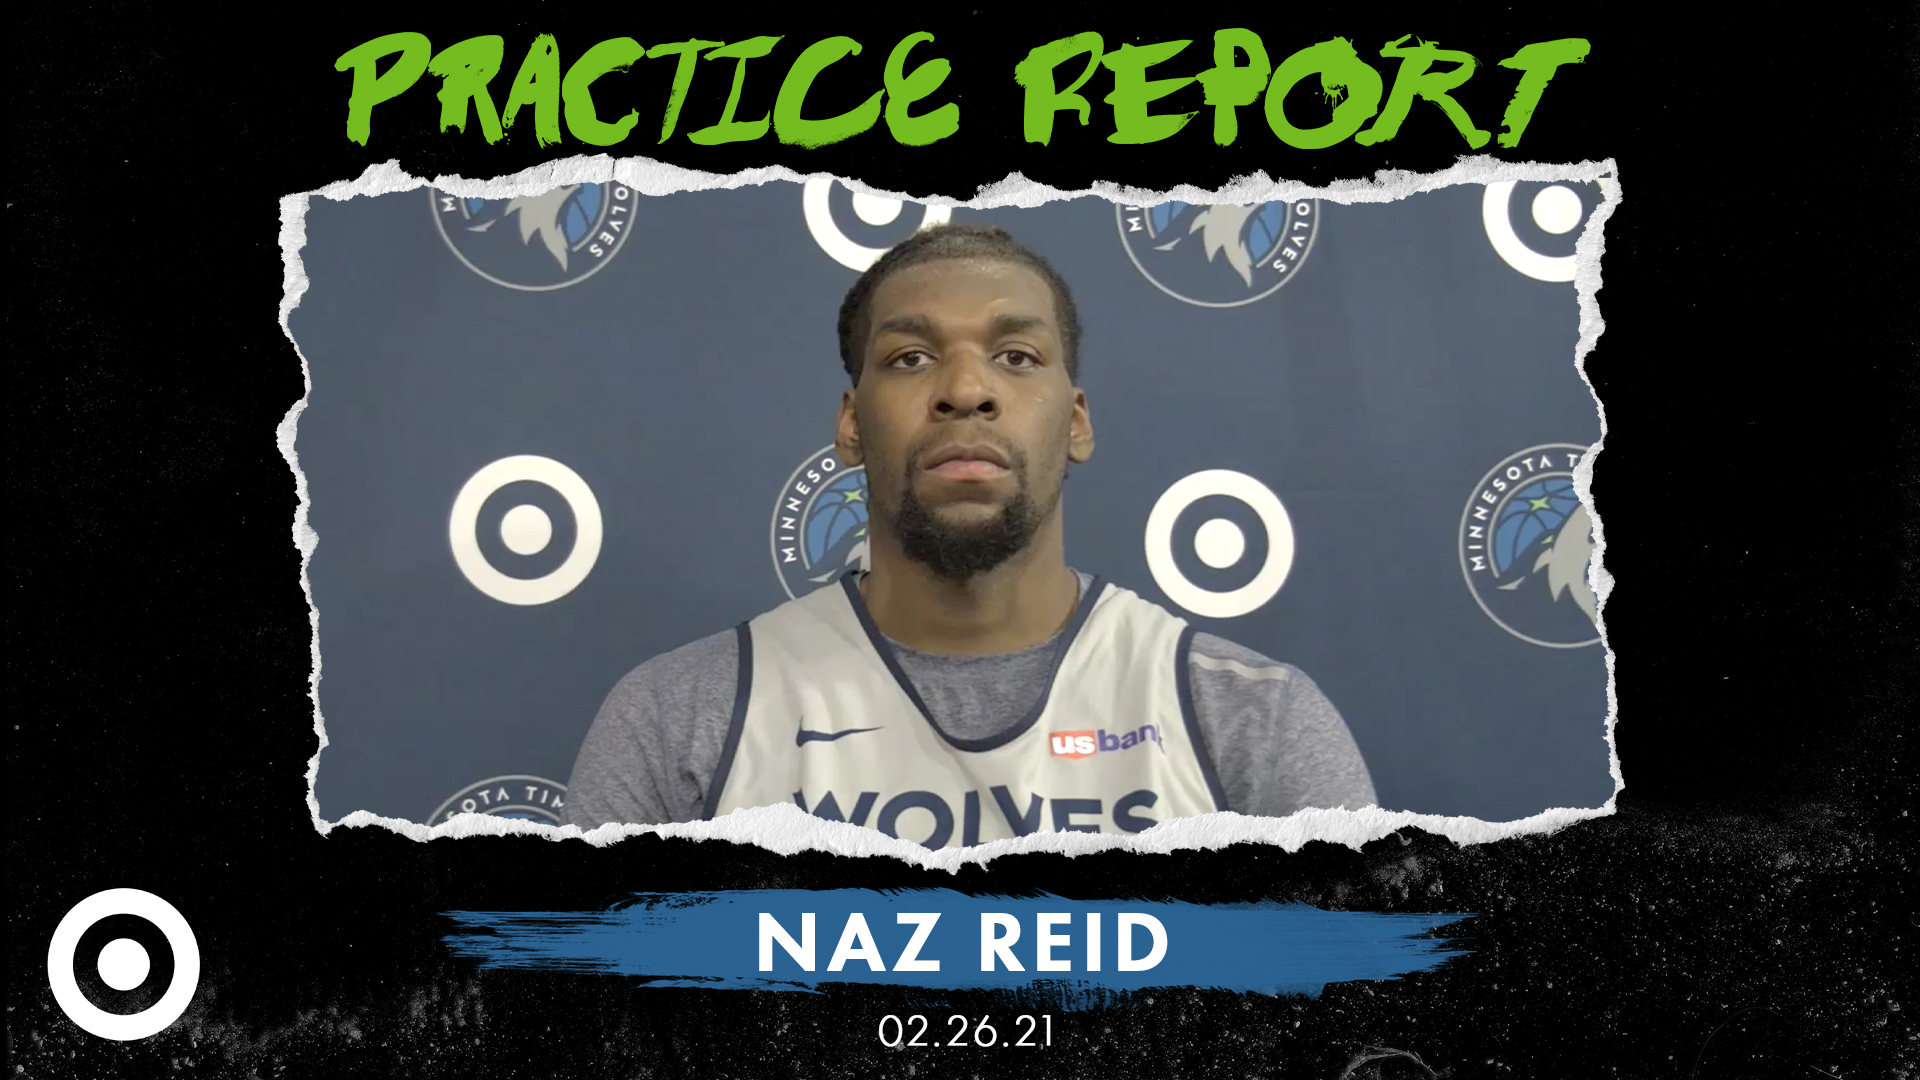 Naz Reid Practice Report - February 26, 2021